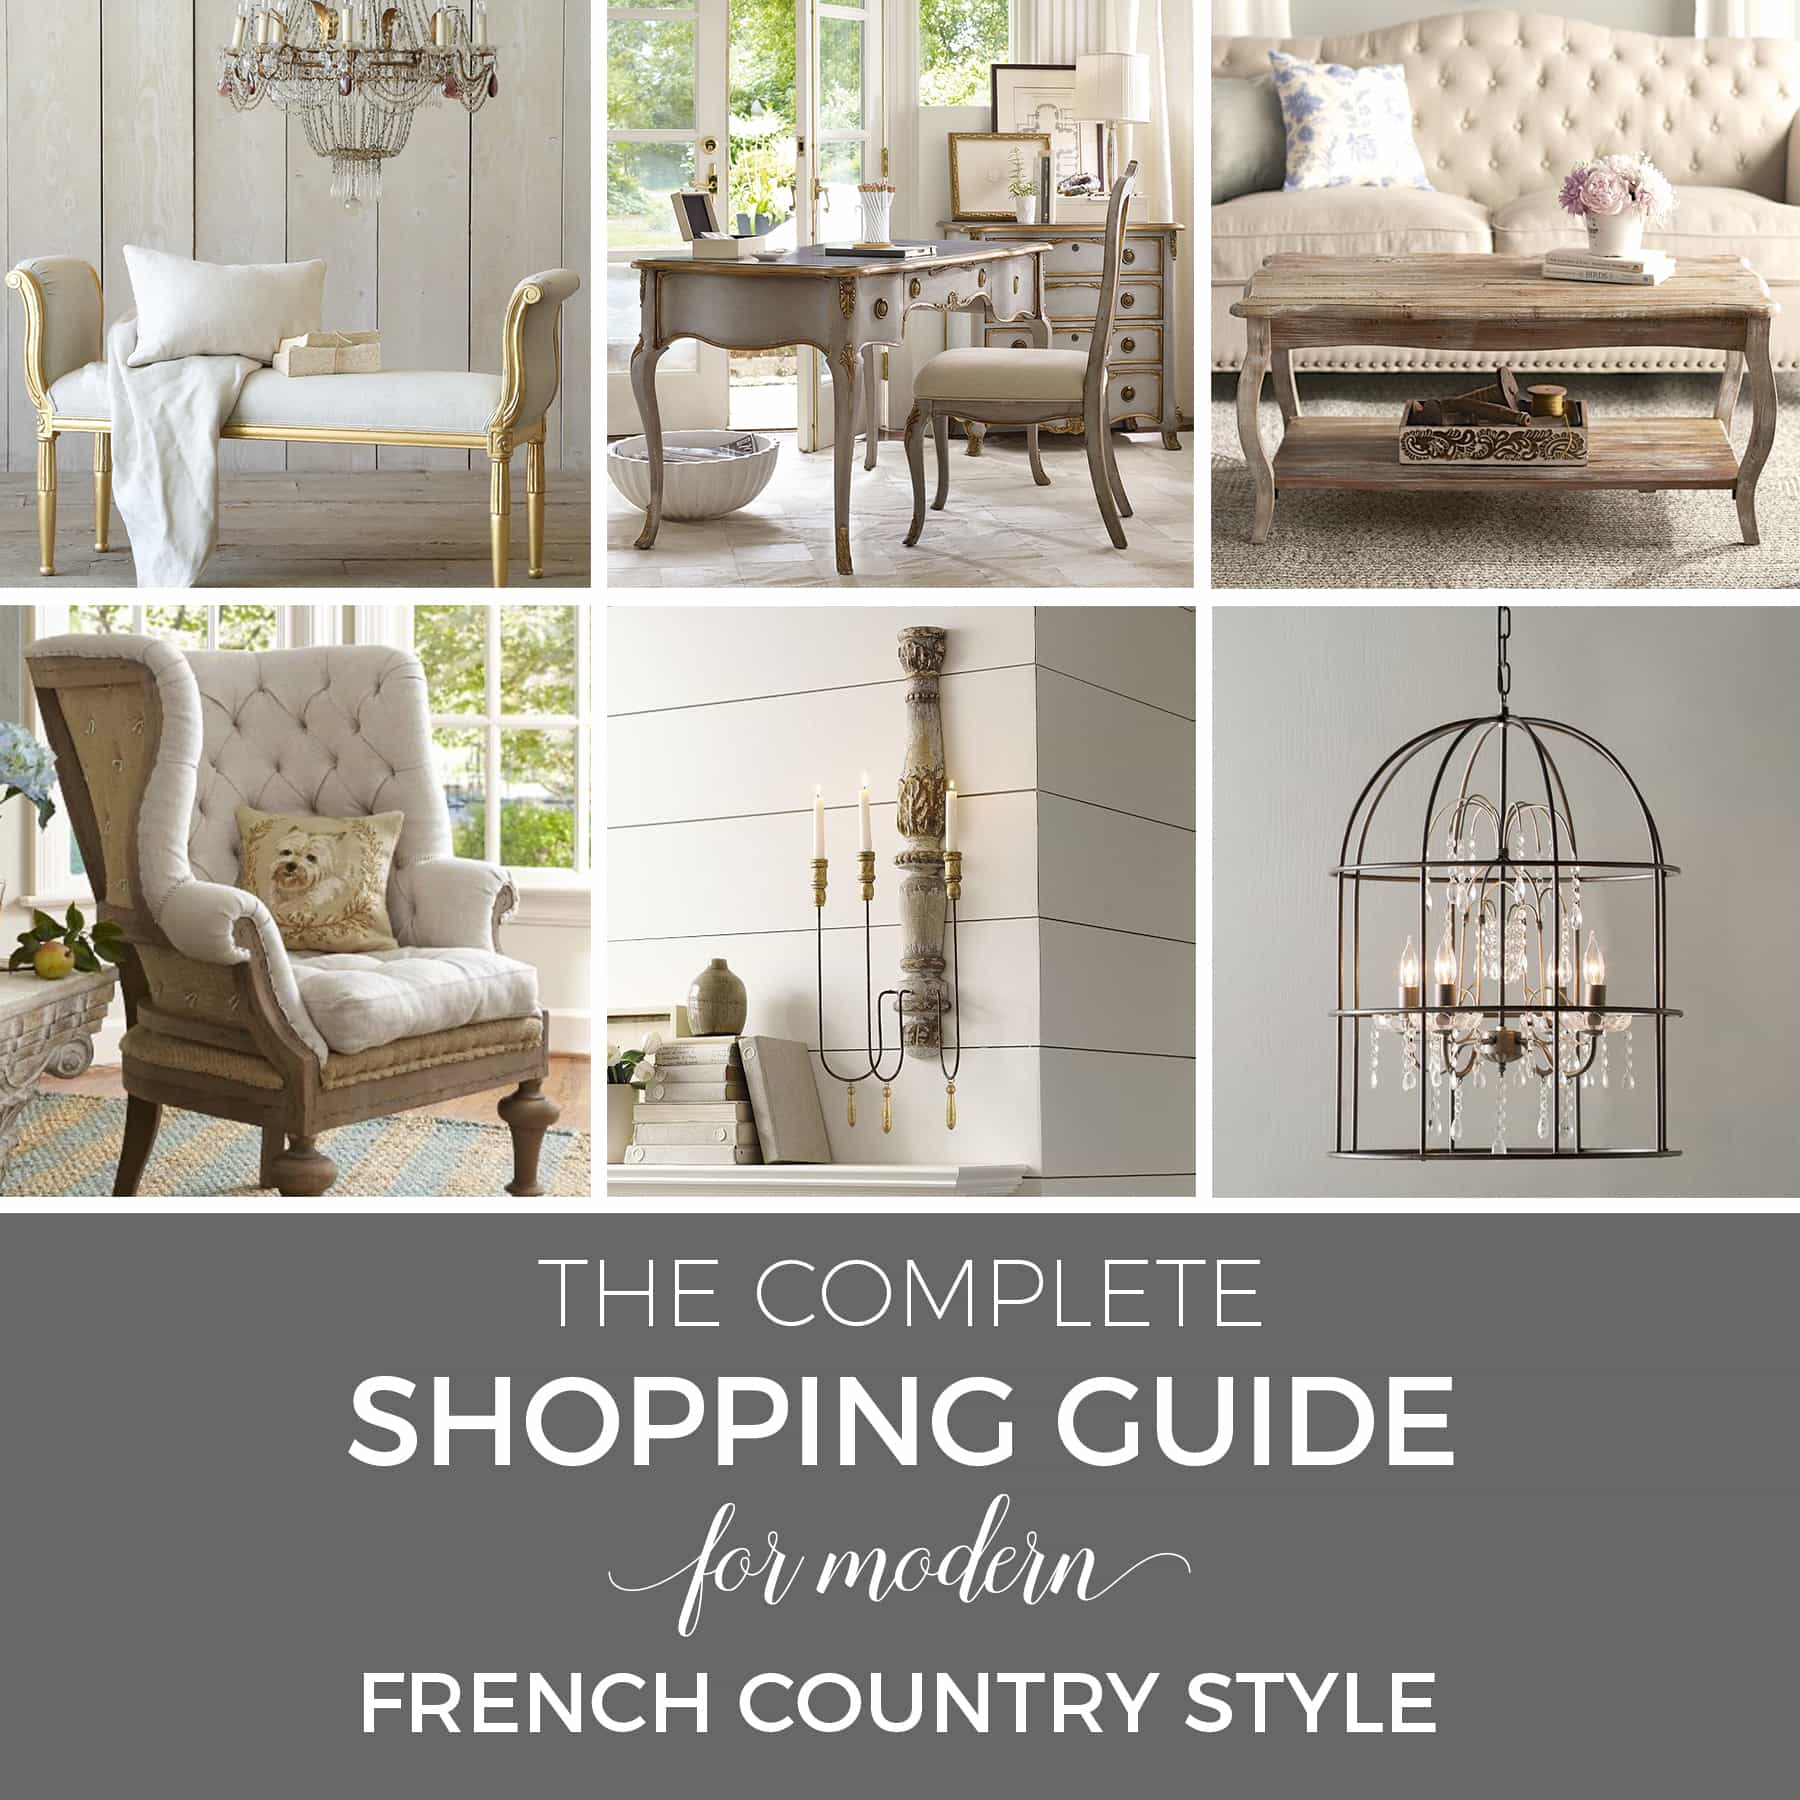 The complete shopping guide for modern French Country style